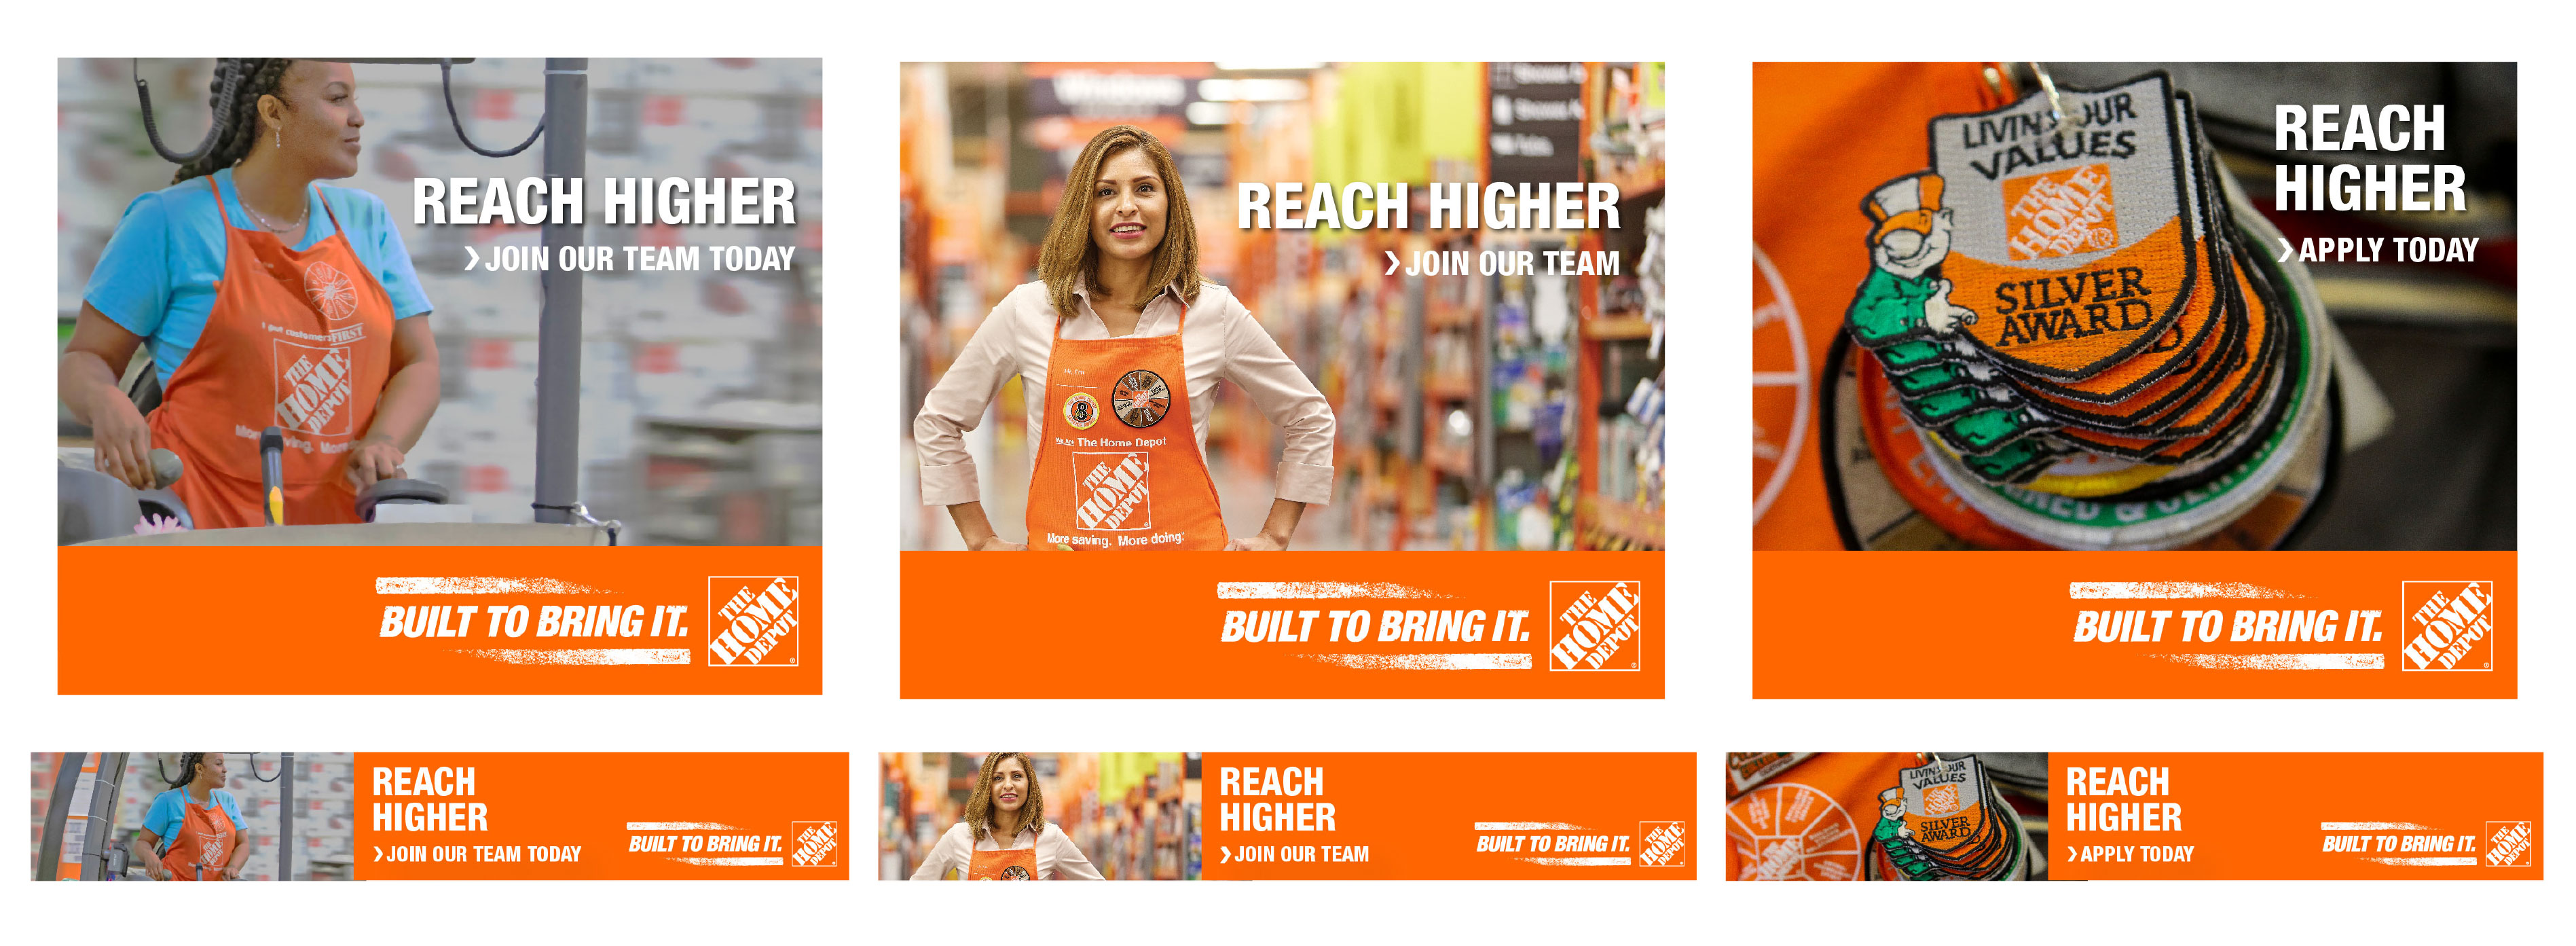 Home Depot — Built To Bring It OLA/banner modules